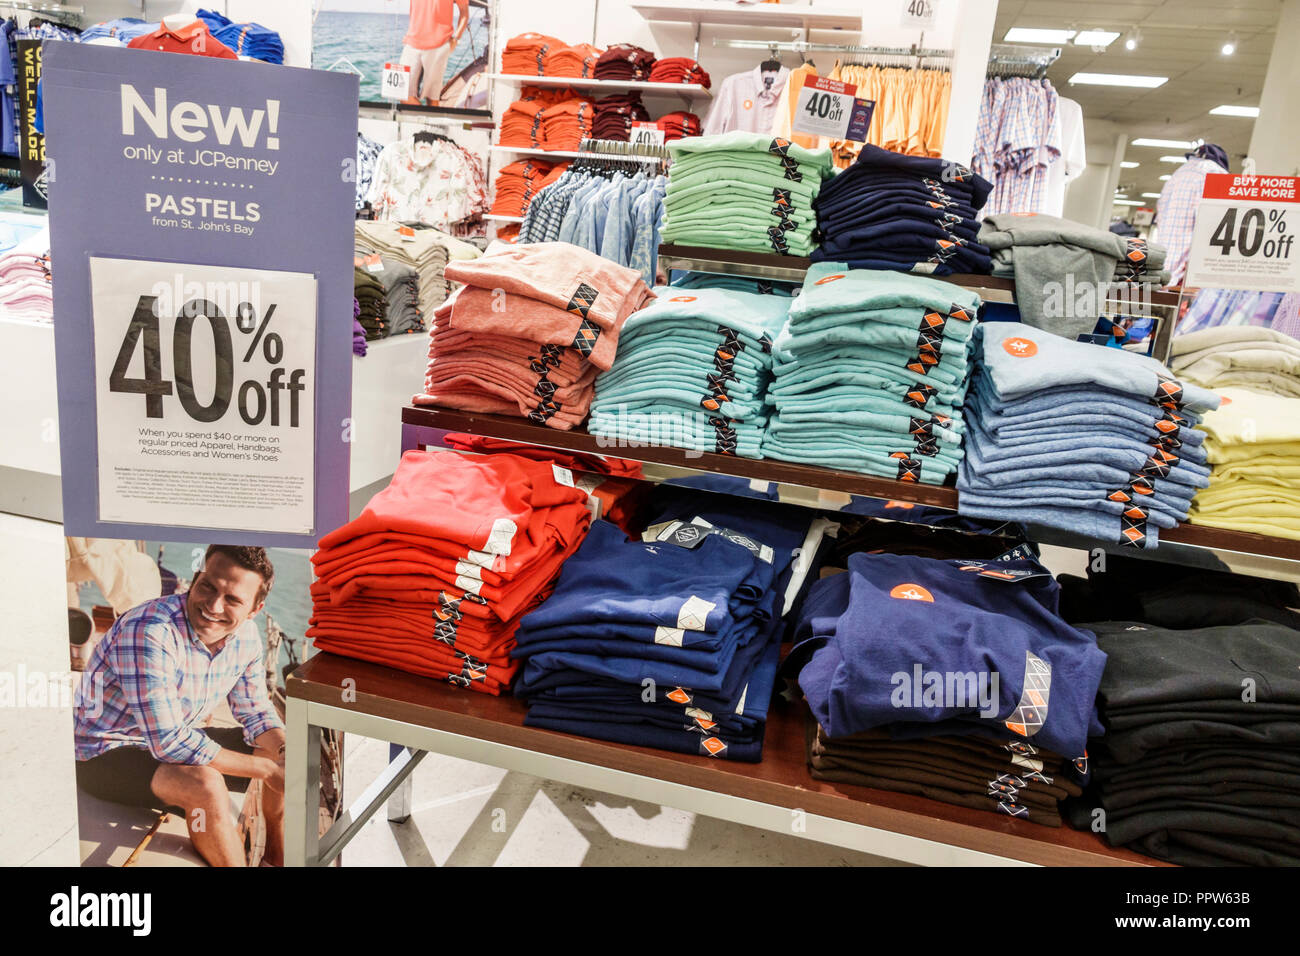 Miami Florida Kendall Dadeland Mall JC J.C. Penny Department Store shopping inside sale display men's clothing St. John's Bay 40% - Stock Image